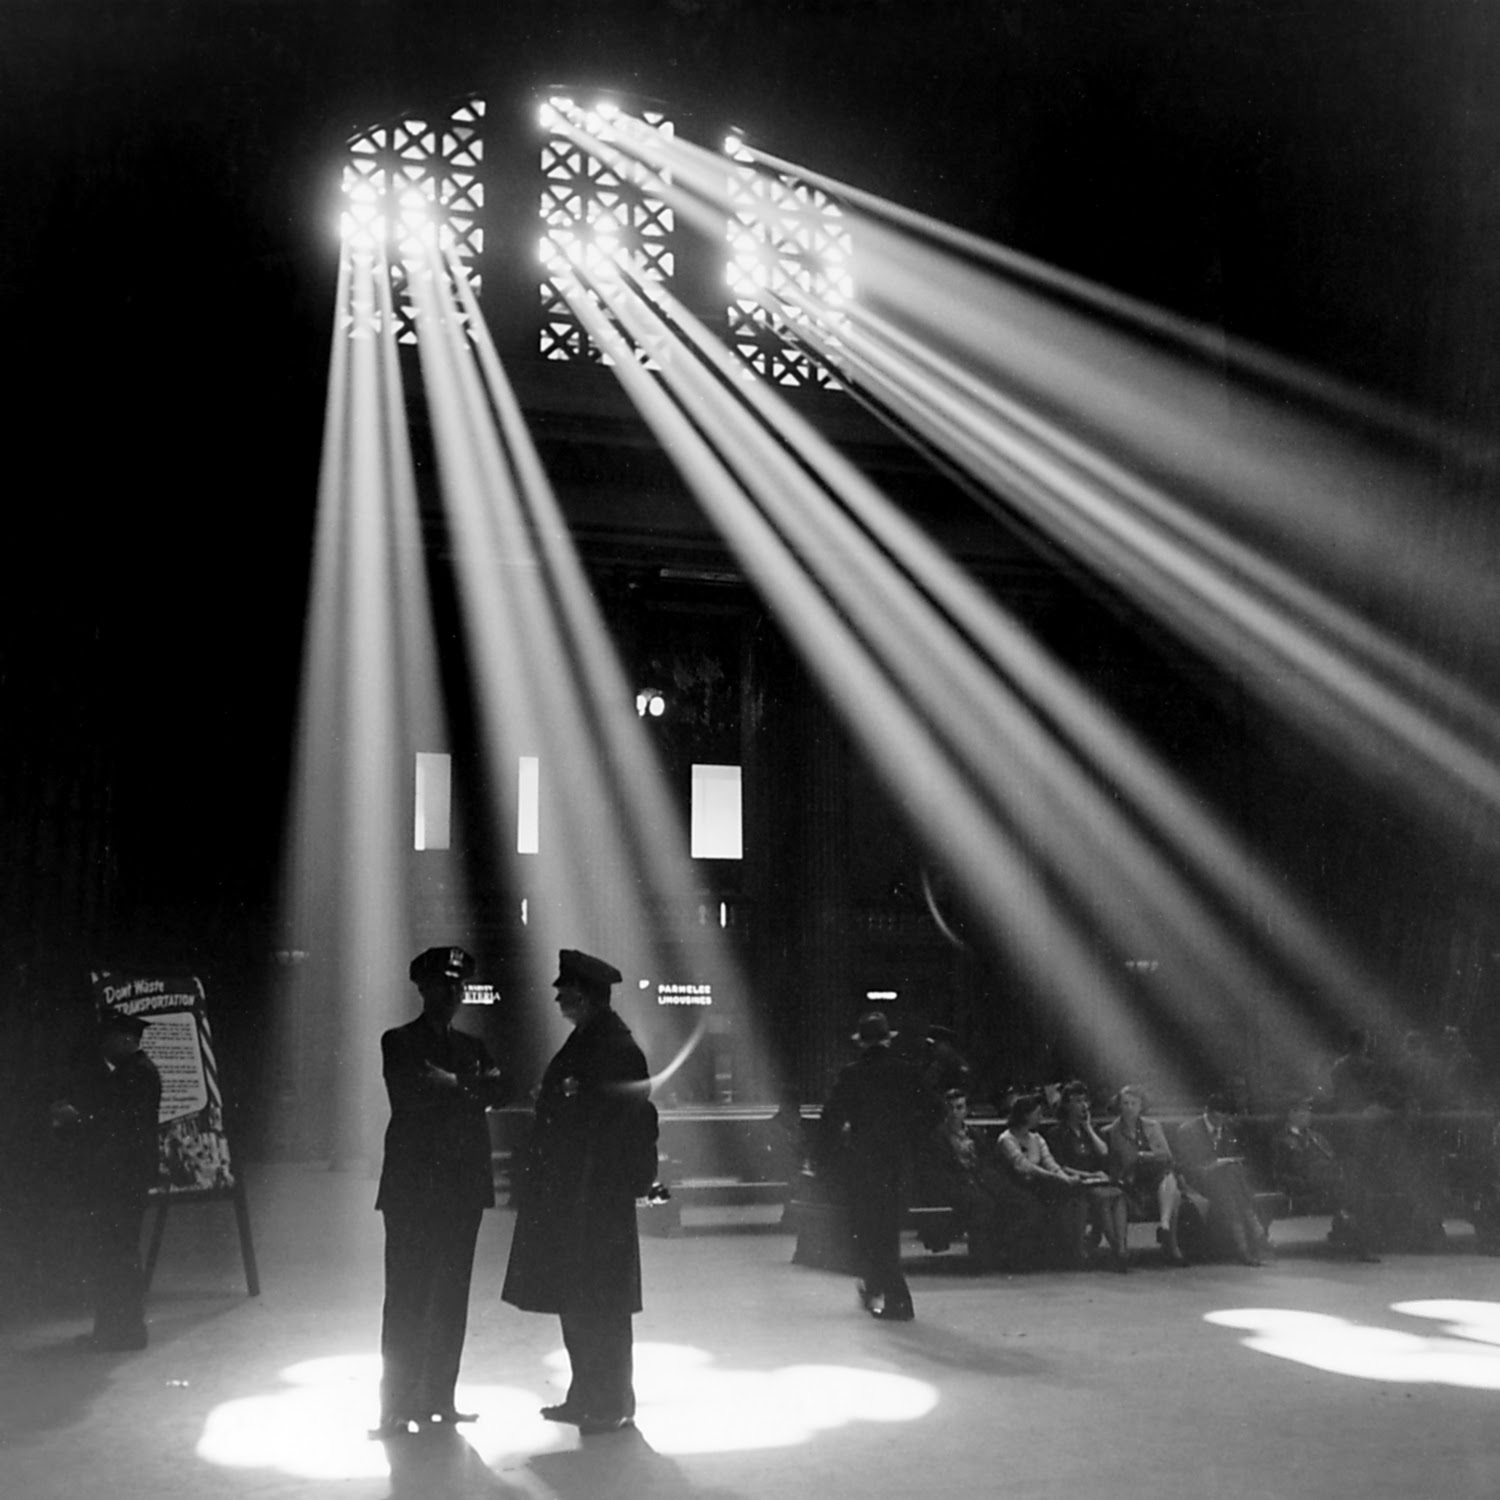 http://upload.wikimedia.org/wikipedia/commons/a/a4/Chicago_Union_Station_1943.jpg